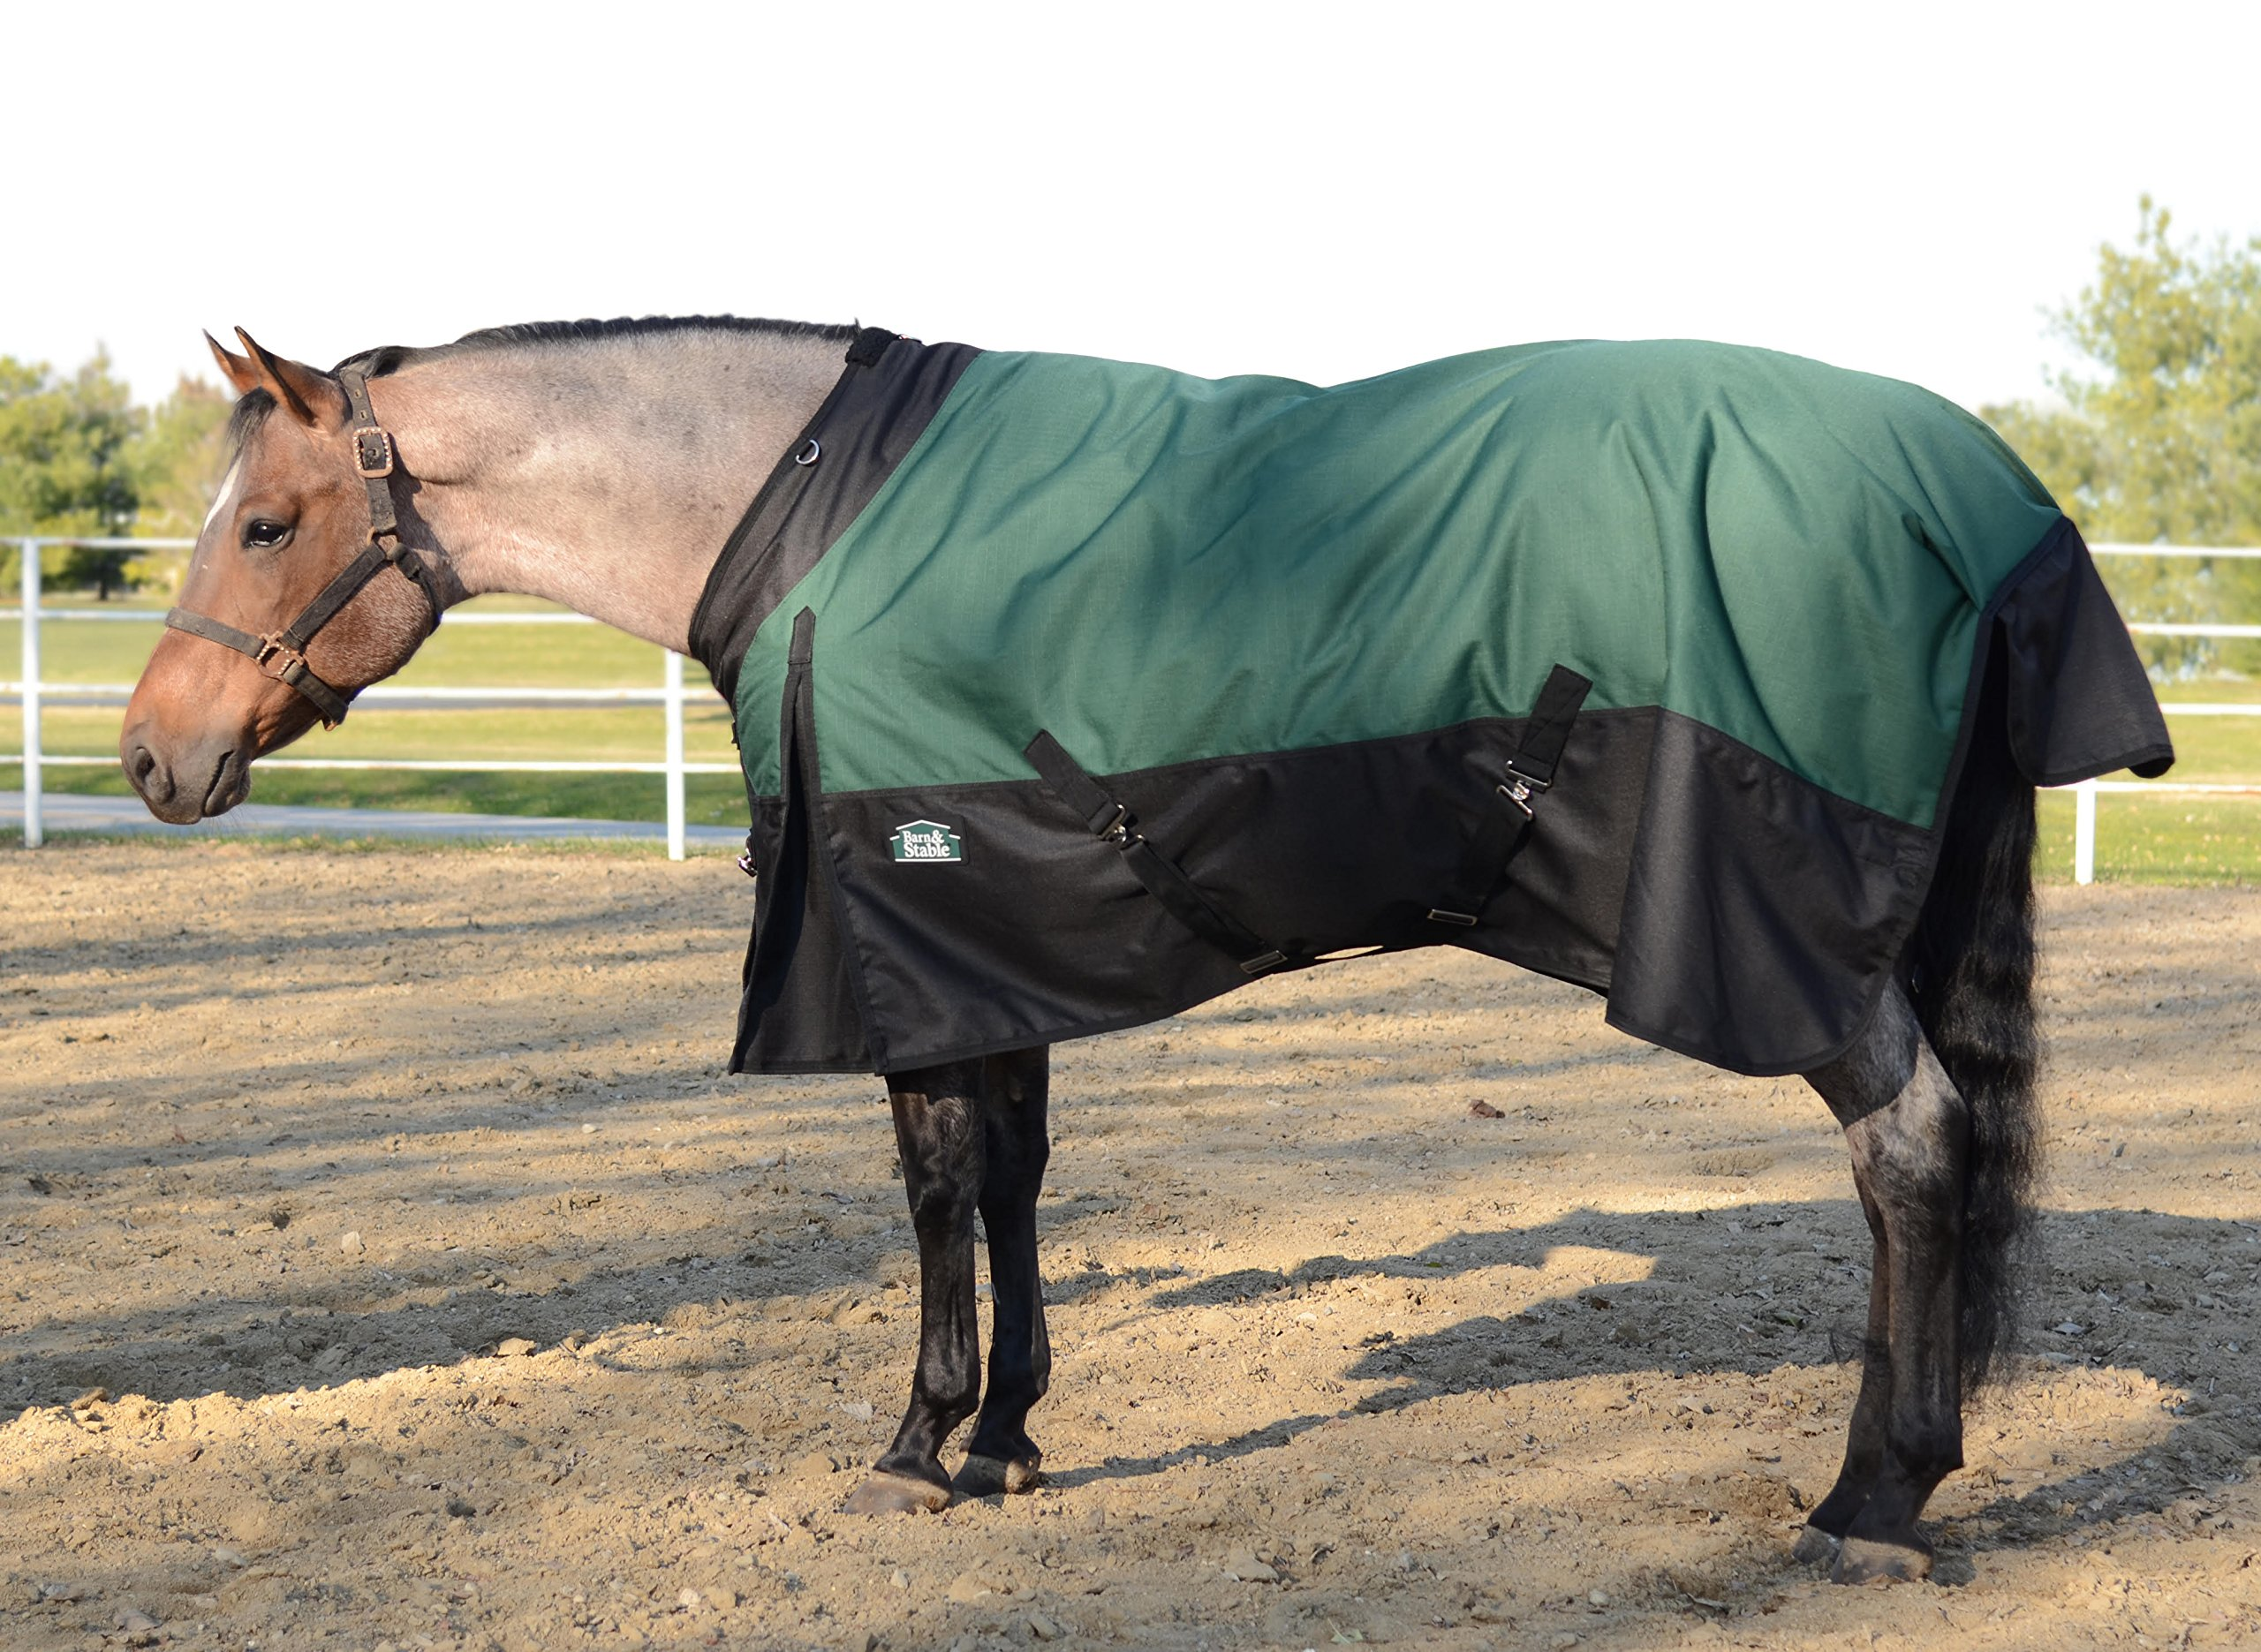 Horse Blanket Turnout Blanket 1200D Ripstop, 210D Lining and 200grm Fill-Hurry! Buy 1 Get 1 Free Tote!